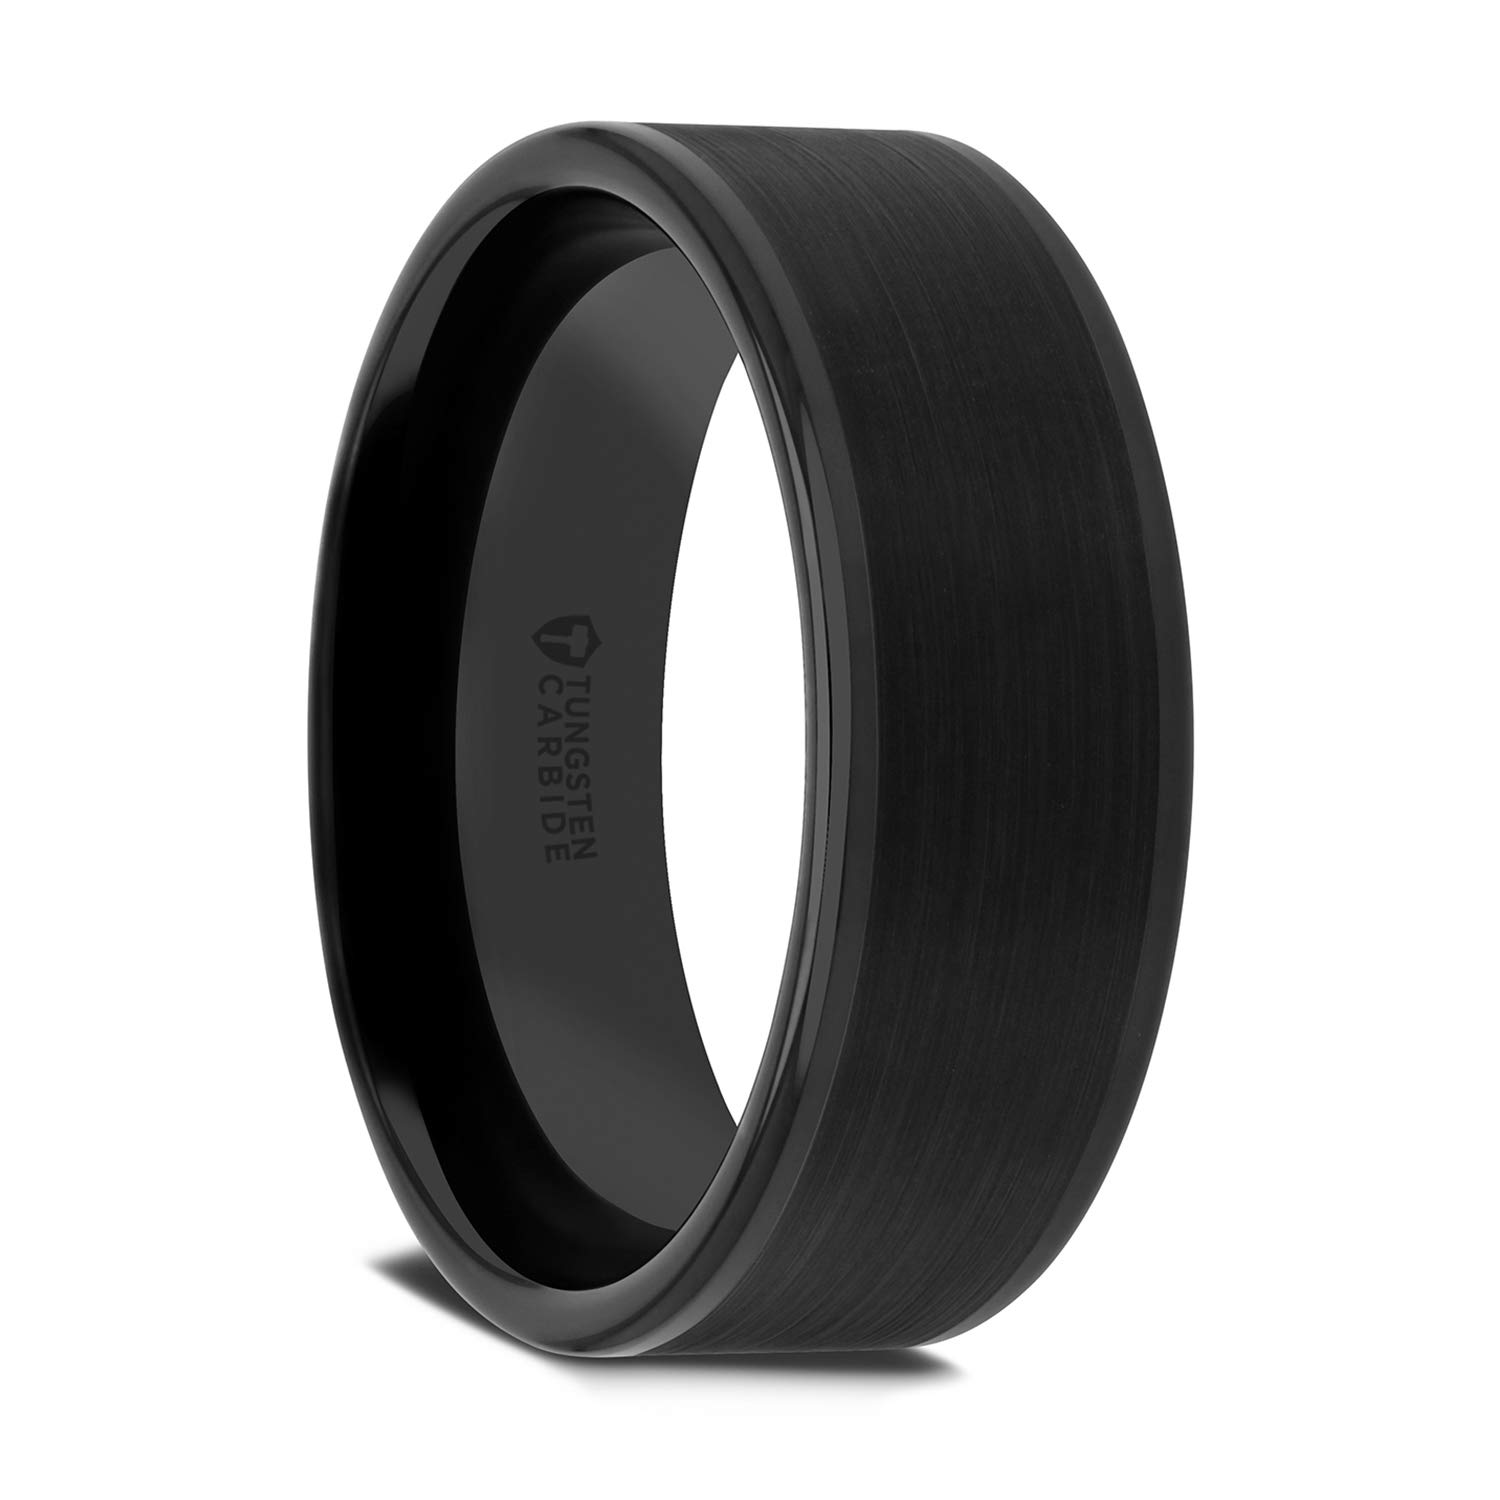 THORSTEN - VULCAN Black Flat Men�s Tungsten Carbide Ring Matte Brushed Finish Polished Edges Comfort Fit Lightweight Durable Wedding Band - 8mm